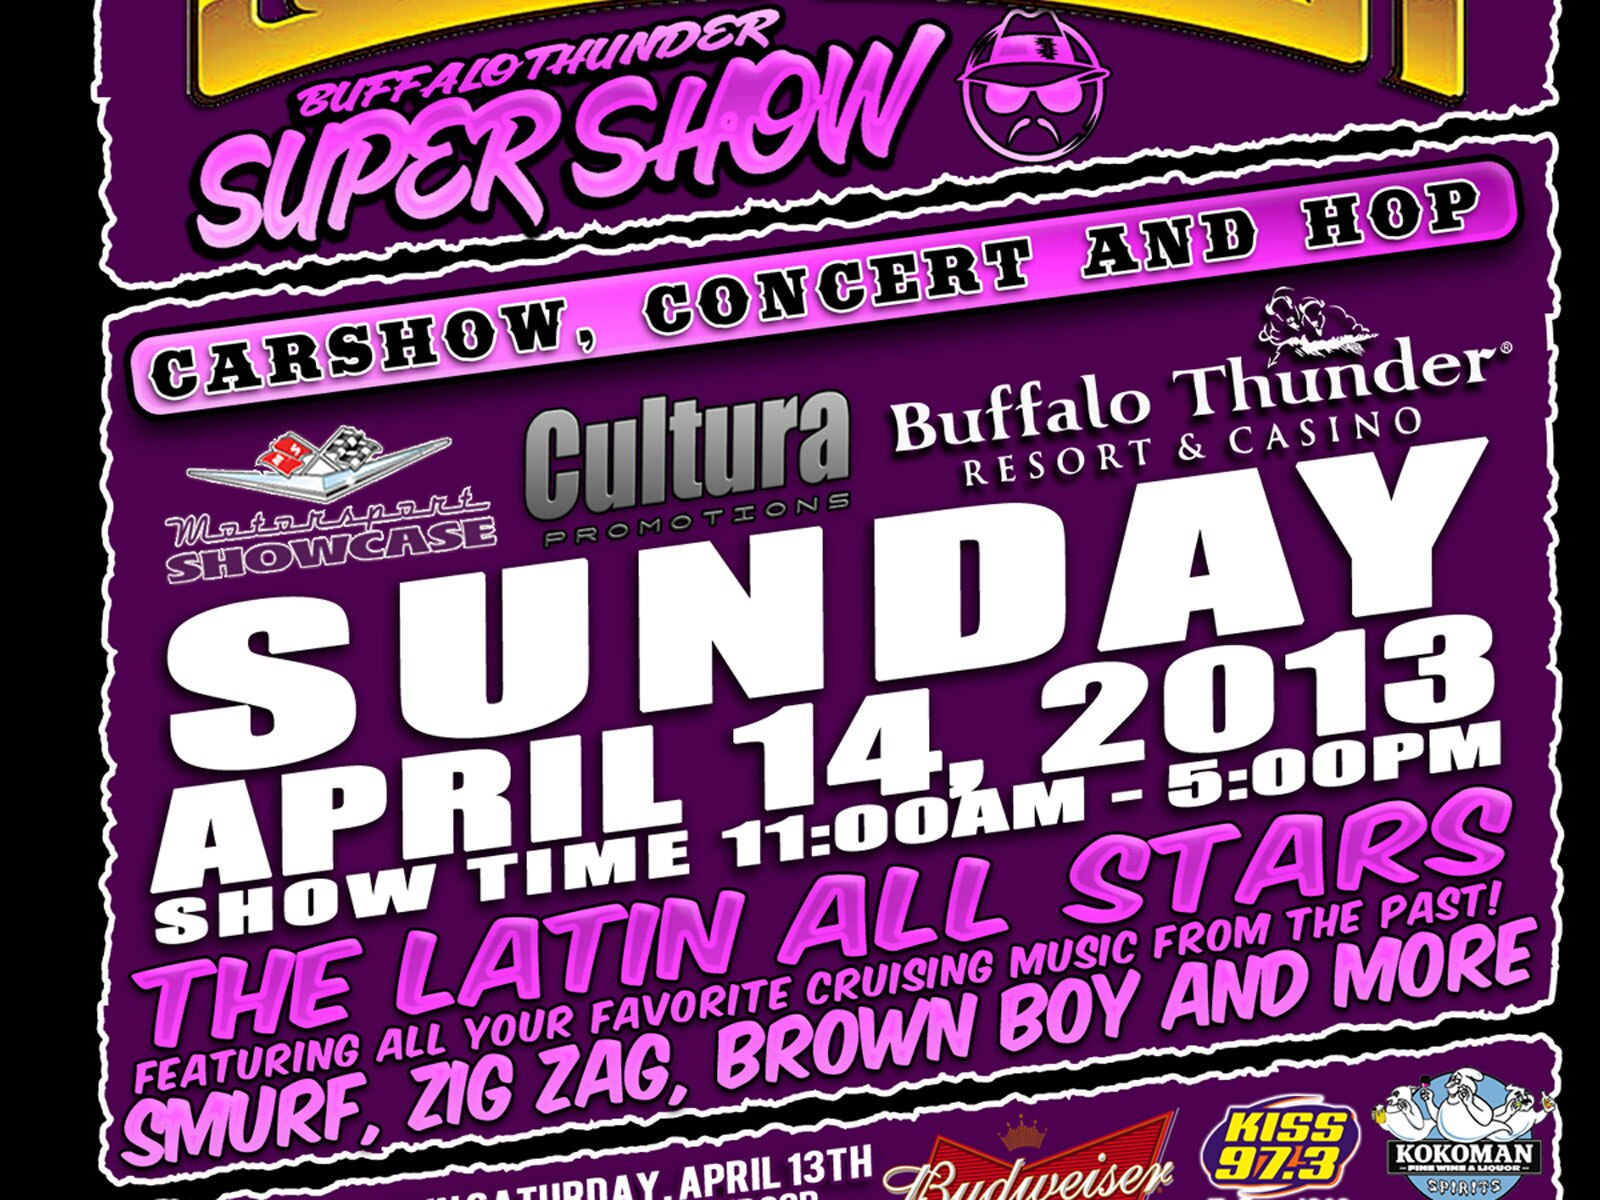 1302-lrmp-01-ps-buffalo-thunder-super-show-flyer